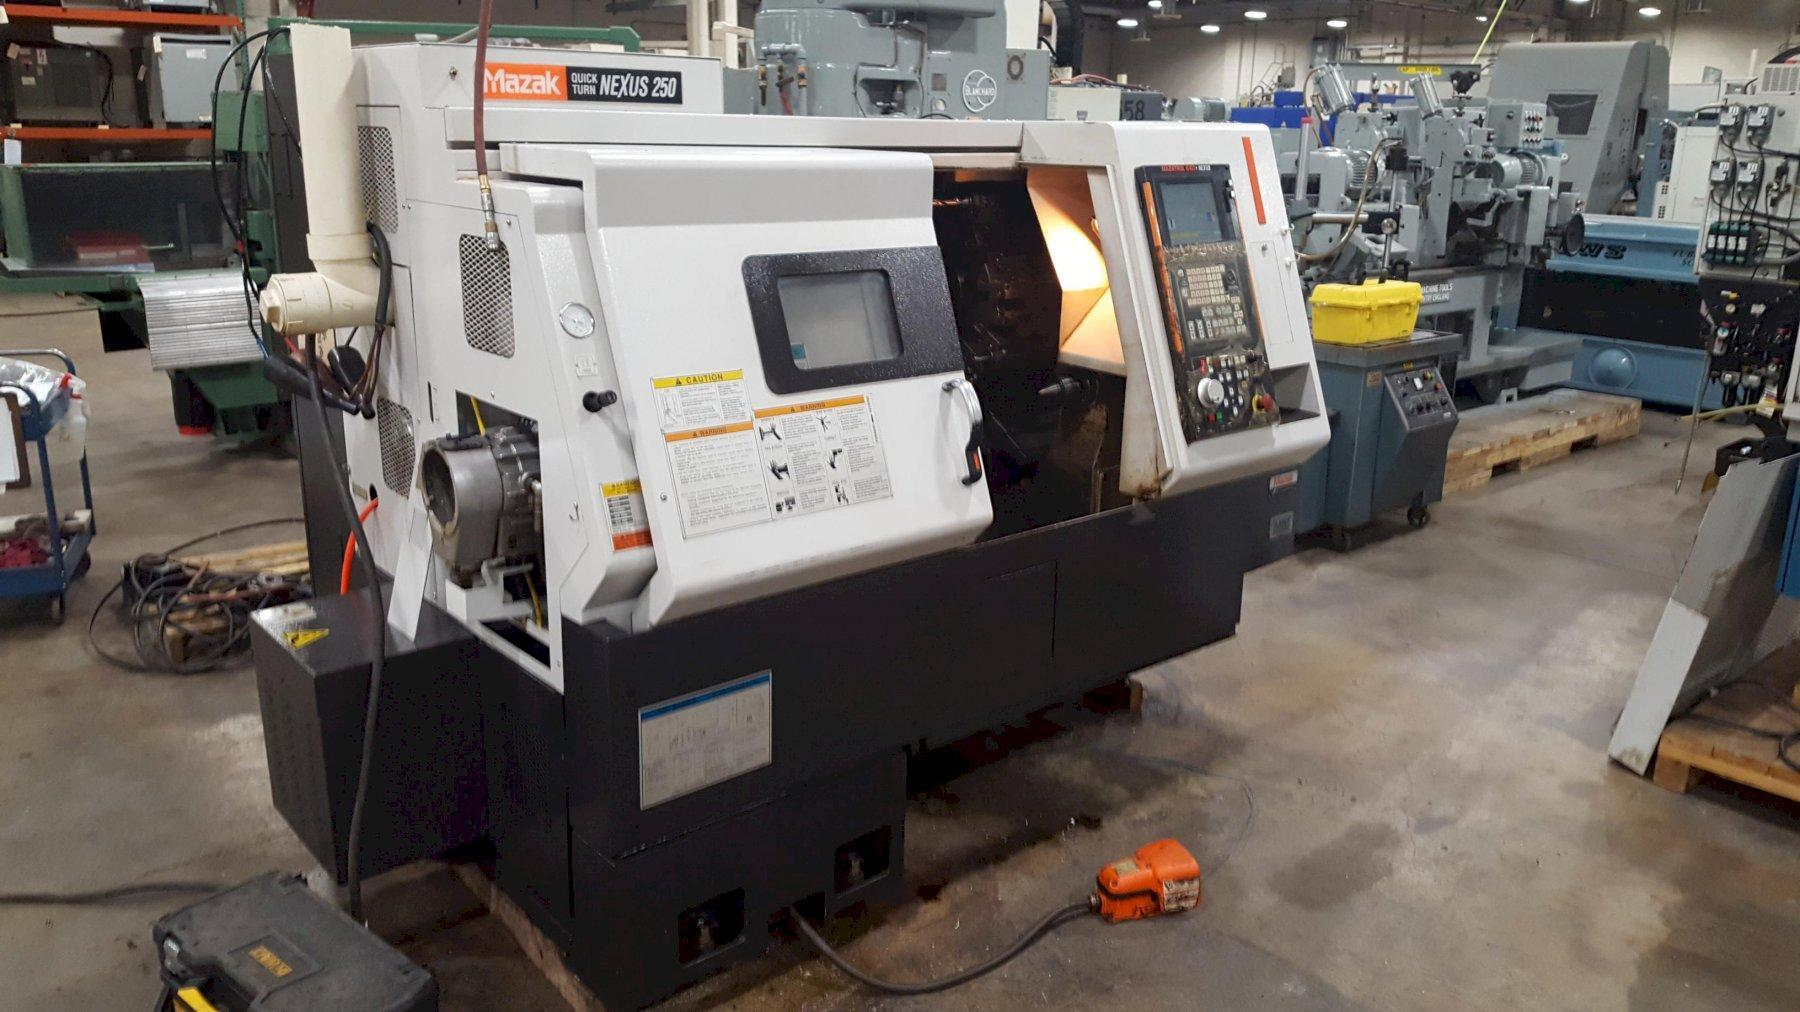 Mazak Quick Turn Nexus 250 CNC Turning Center